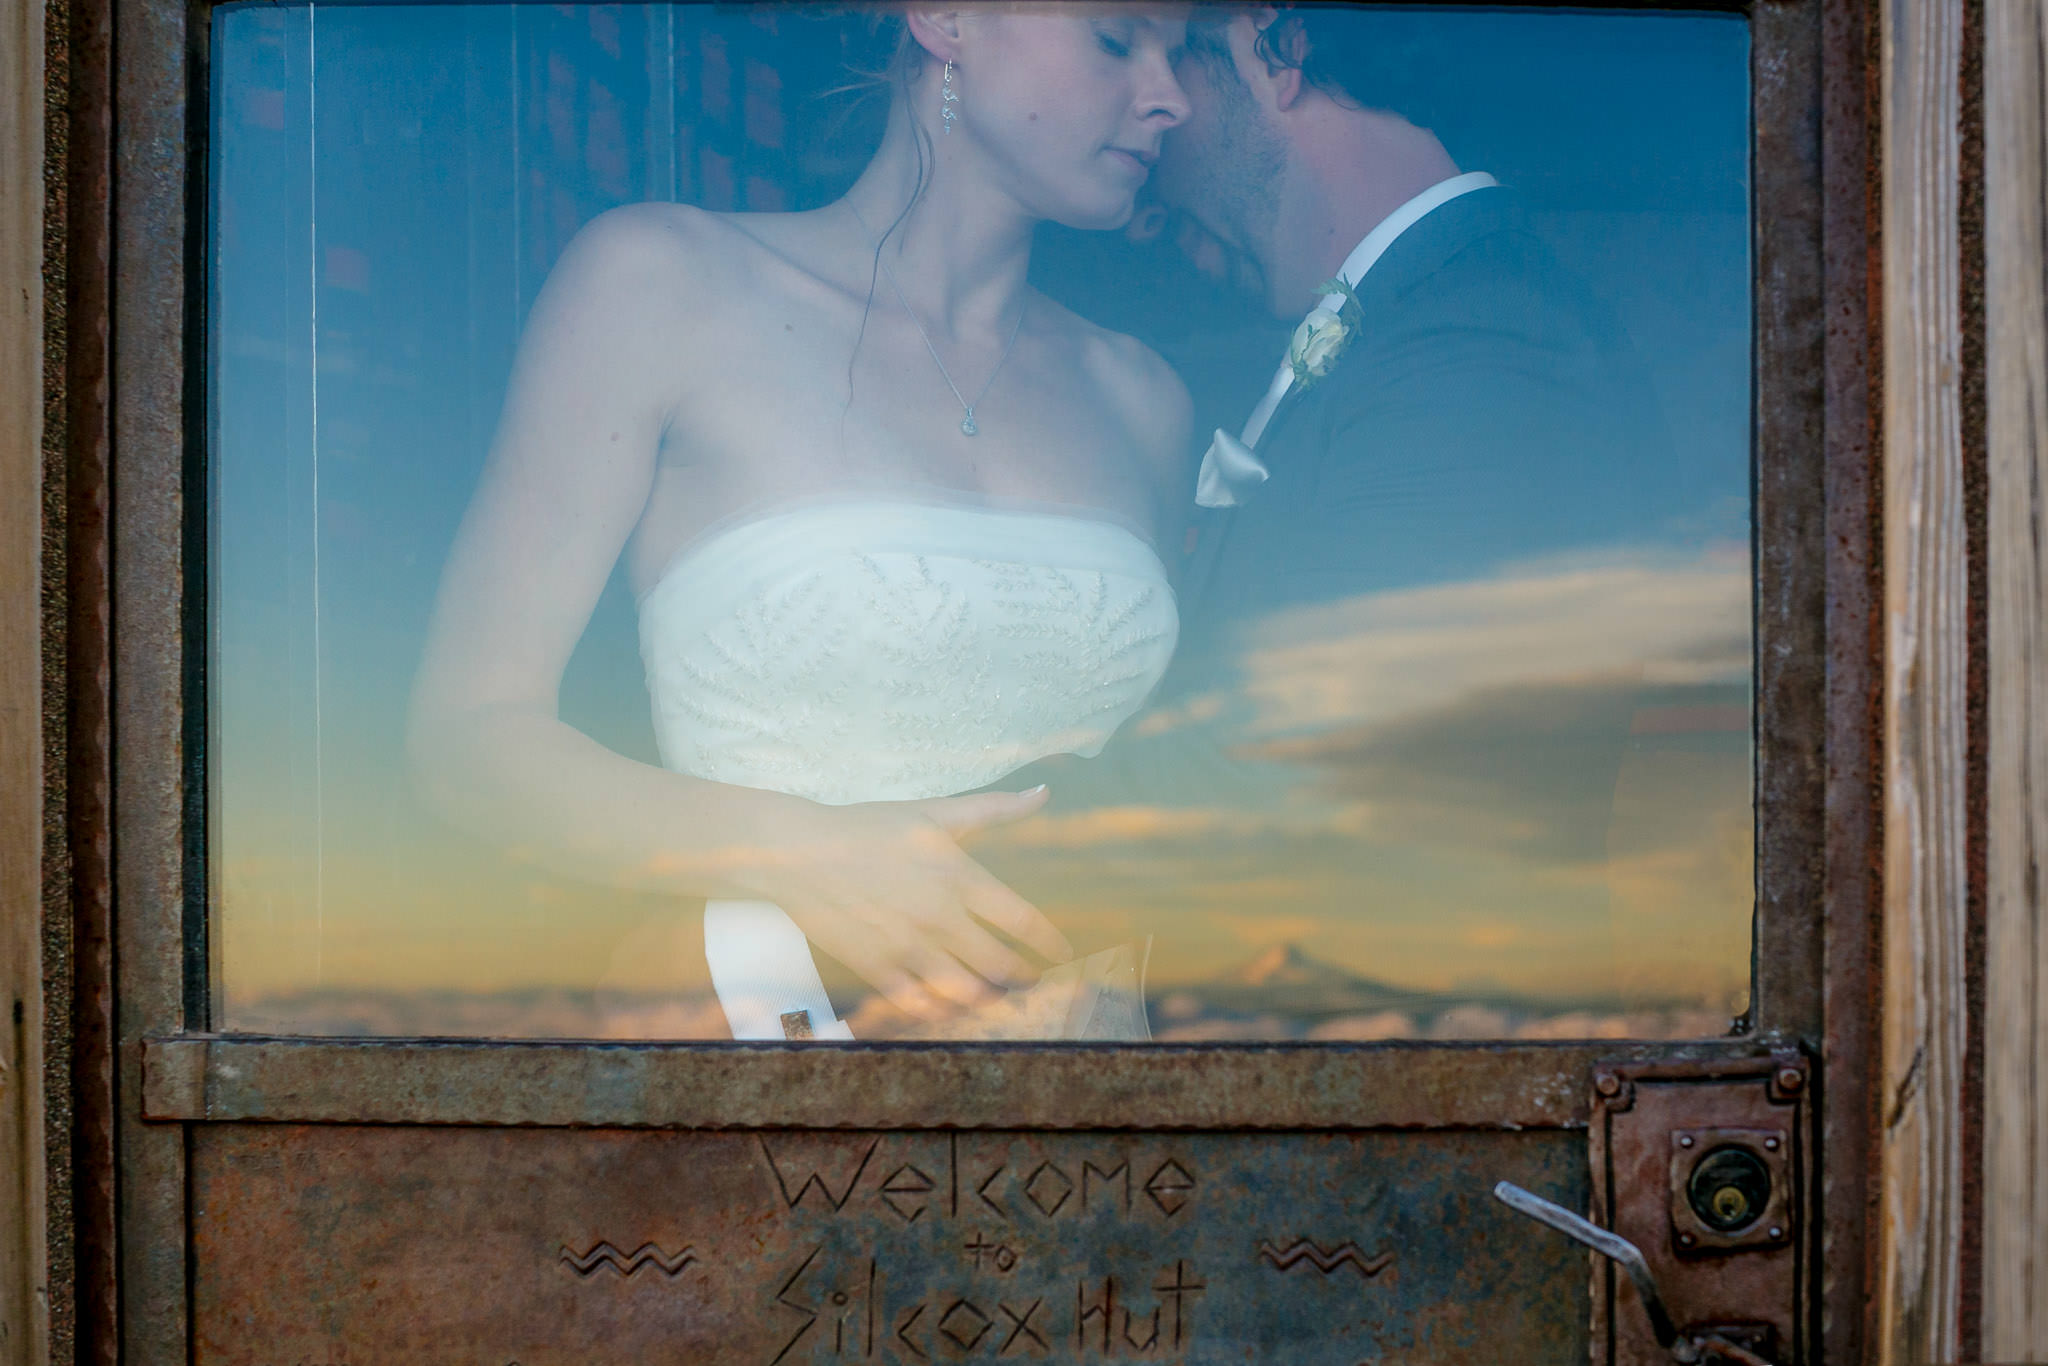 Bride and Groom reflected in Silcox Hut window with Mt Hood